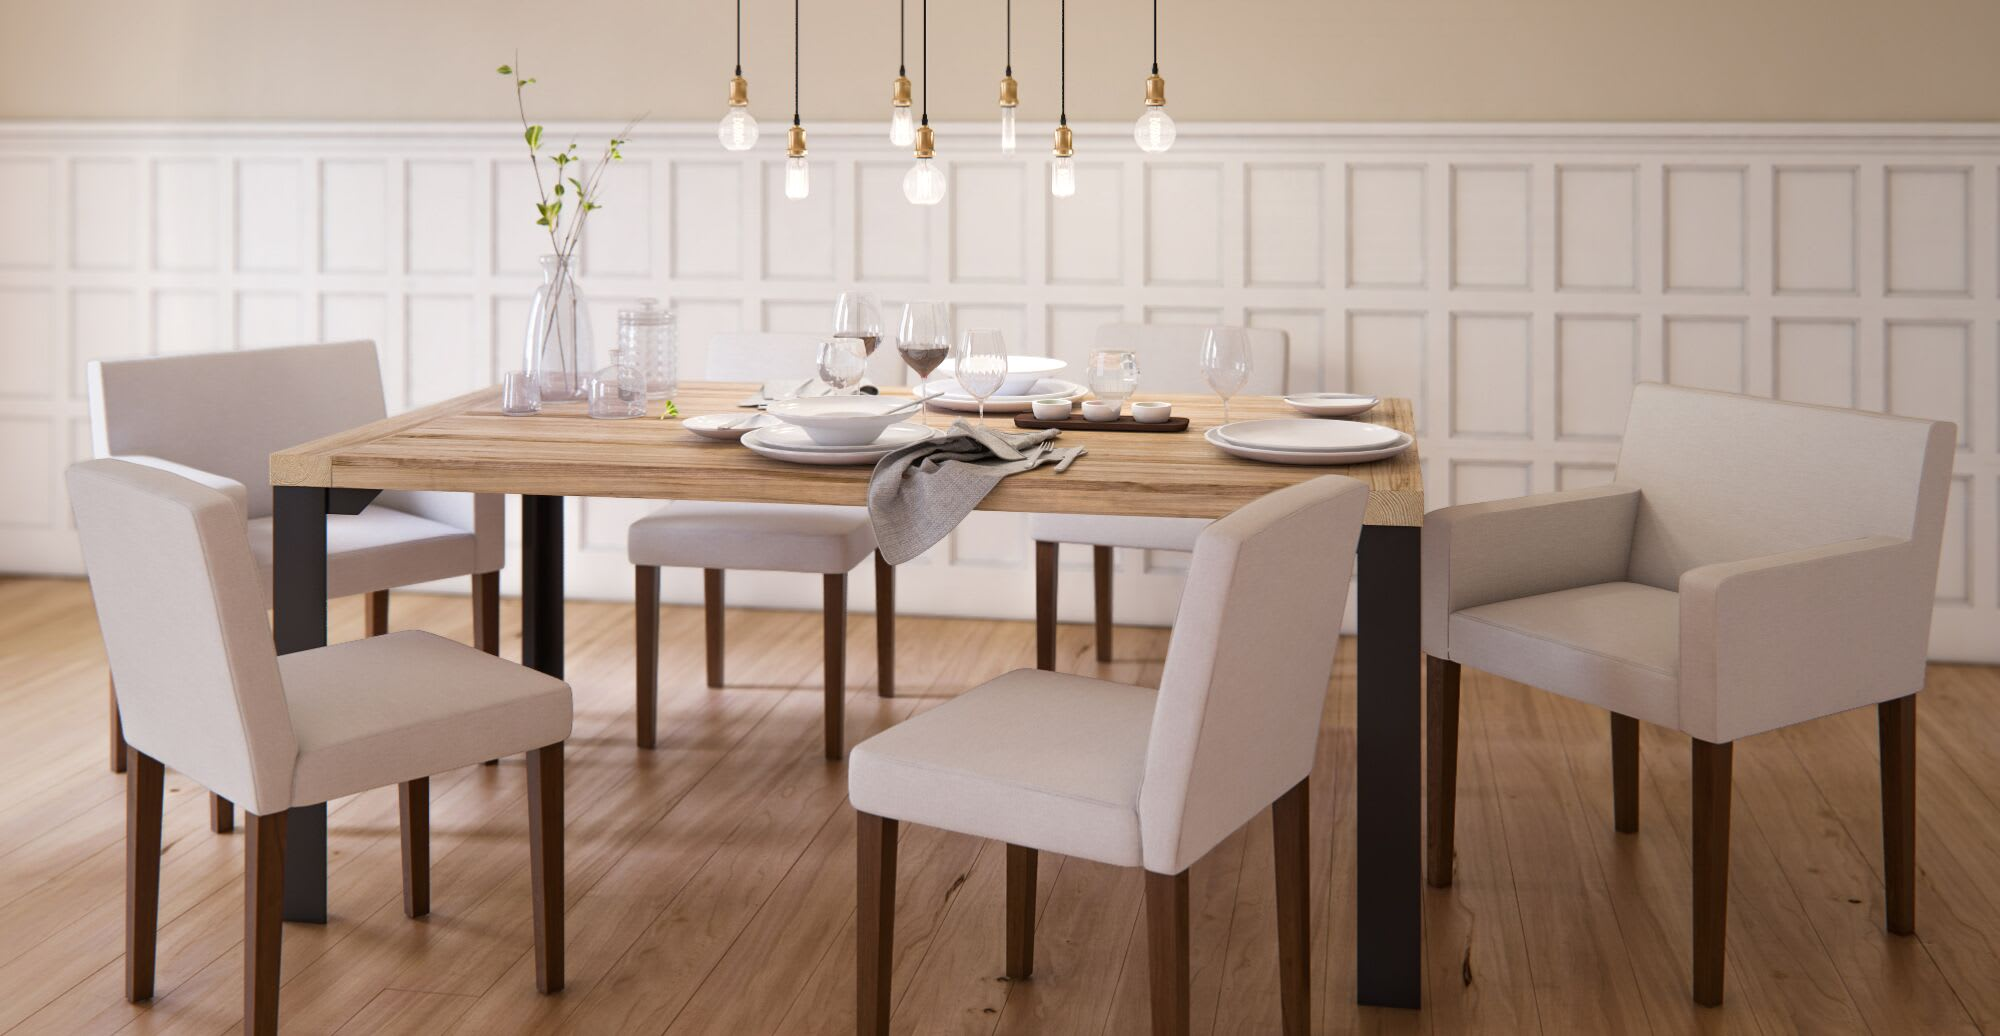 comfortable dining chairs in a designed space